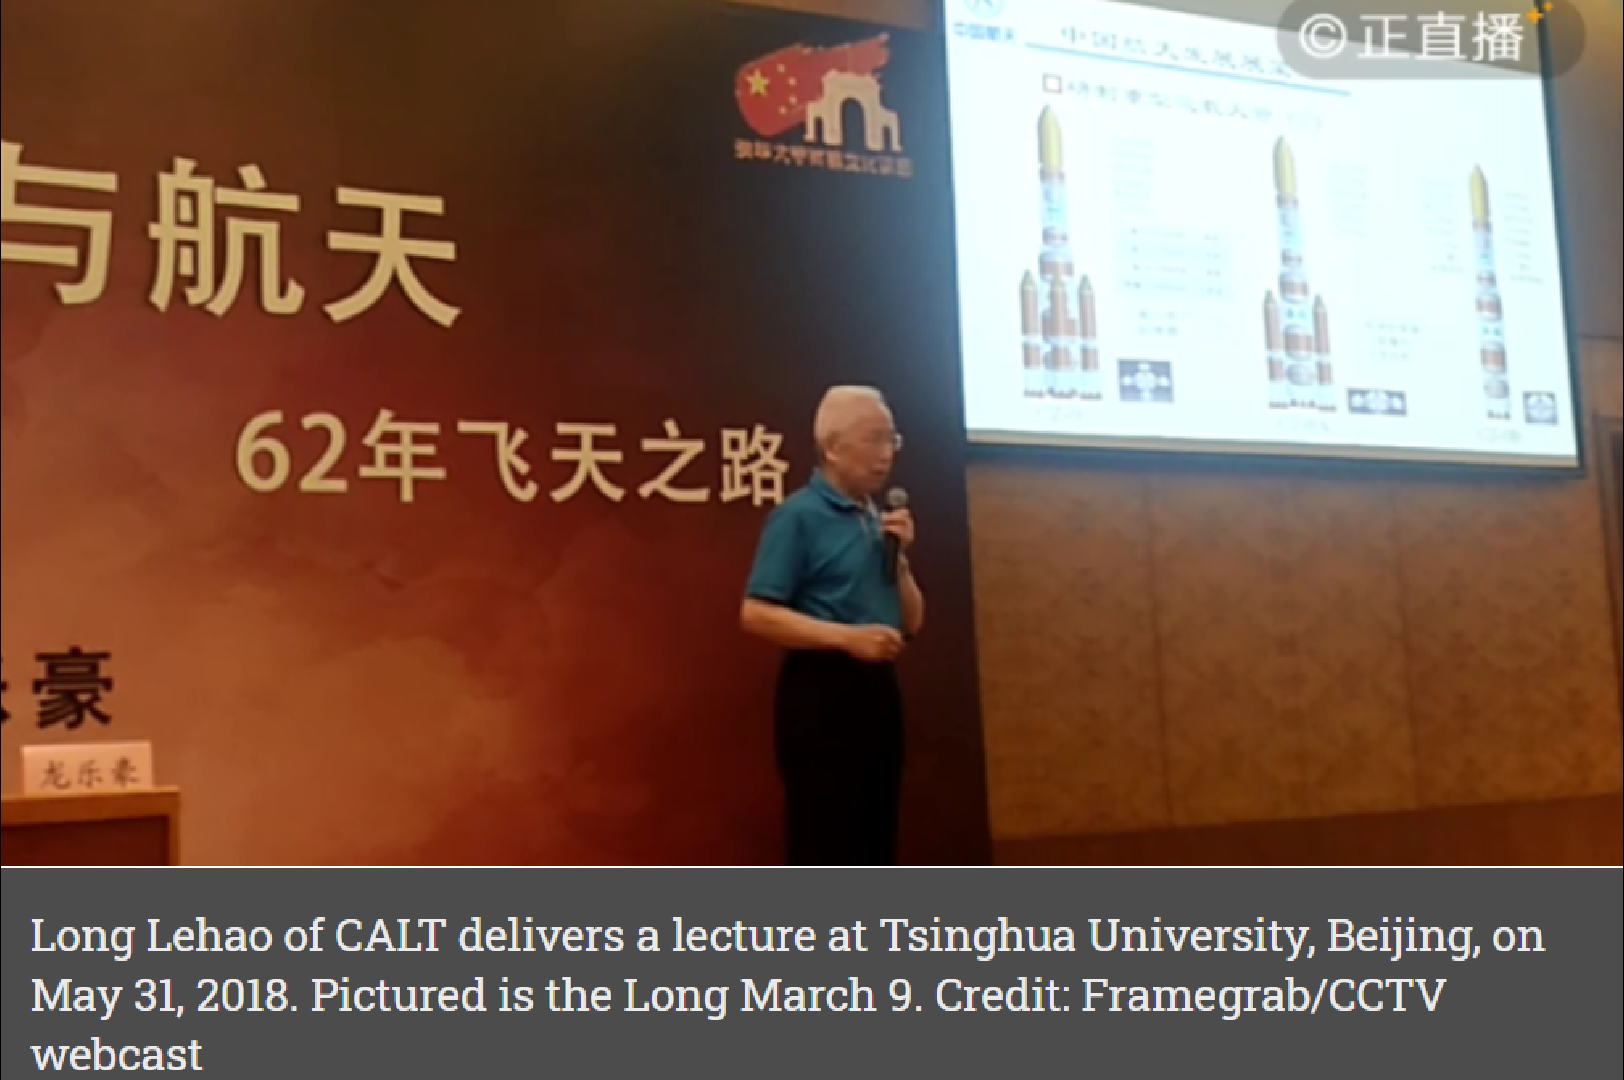 Long Lehao of CALT delivers a lecture at Tsinghua Univ, Beijing, on 20180531 (in pic is CZ-9).png